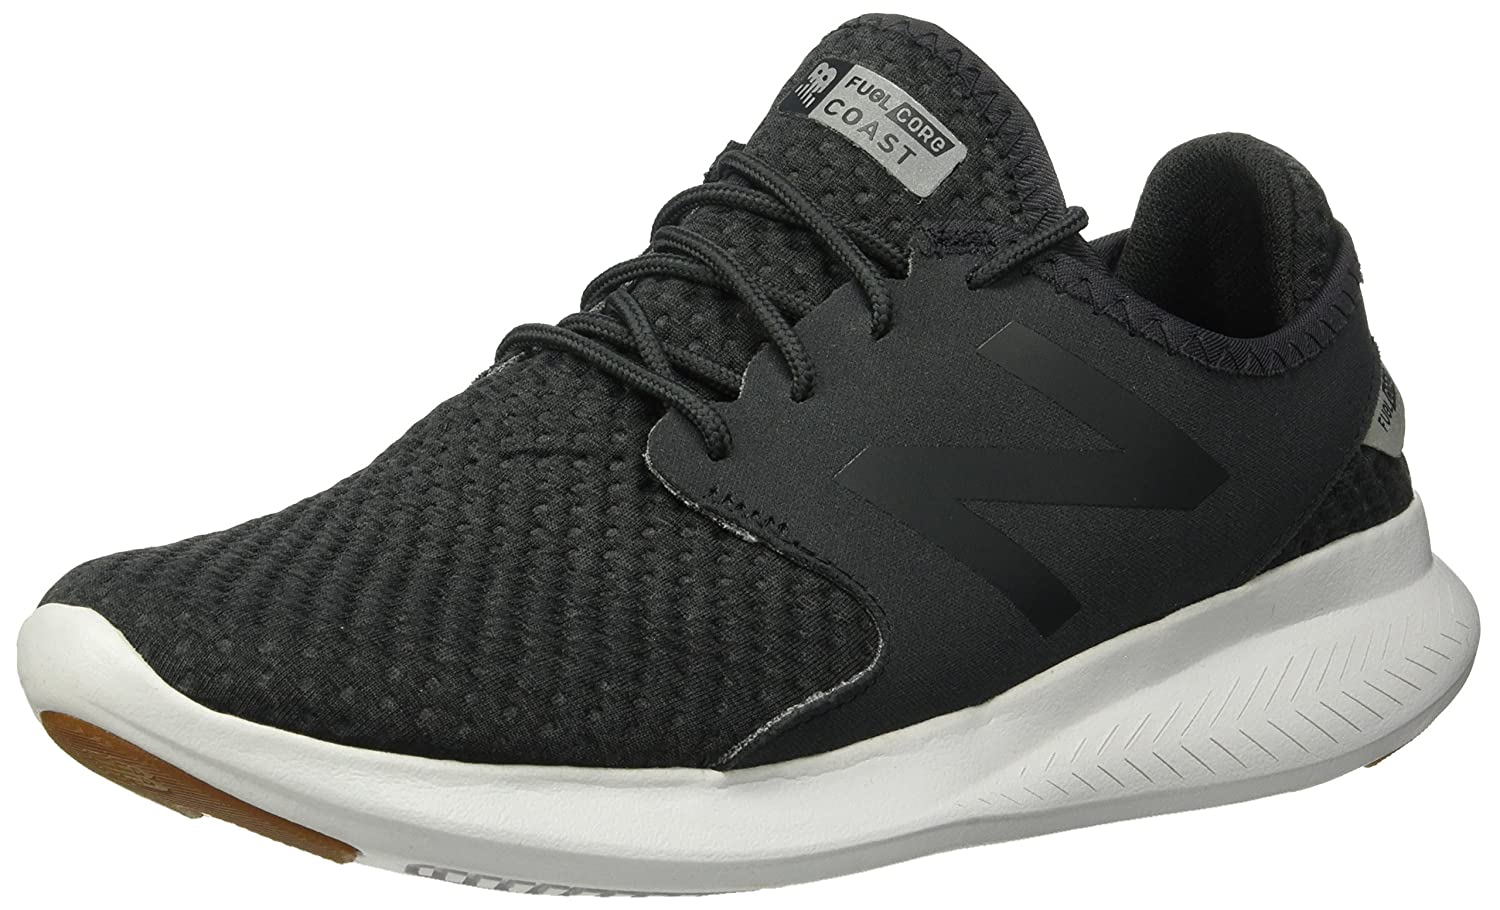 New Balance Women's Coast-V3 Running Shoe B01NAMVZJ6 11 B(M) US|Black/Phantom